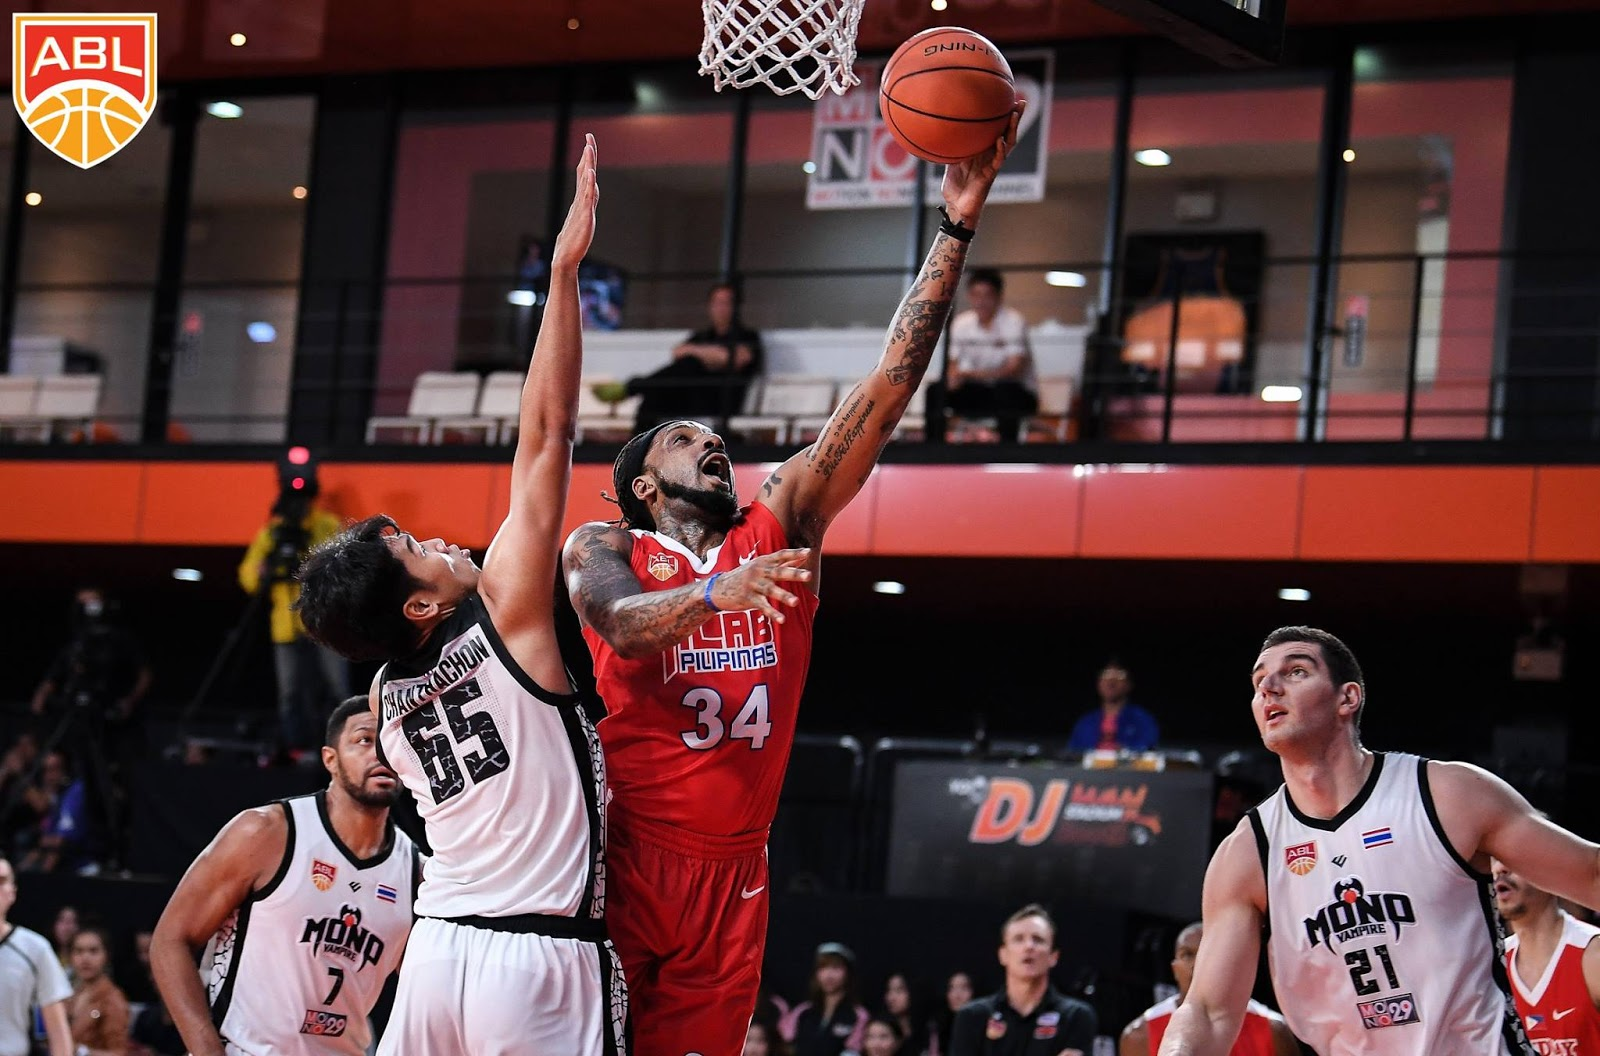 Alab Pilipinas survives Mono Vampire Thailand to extend its winning streak to 6